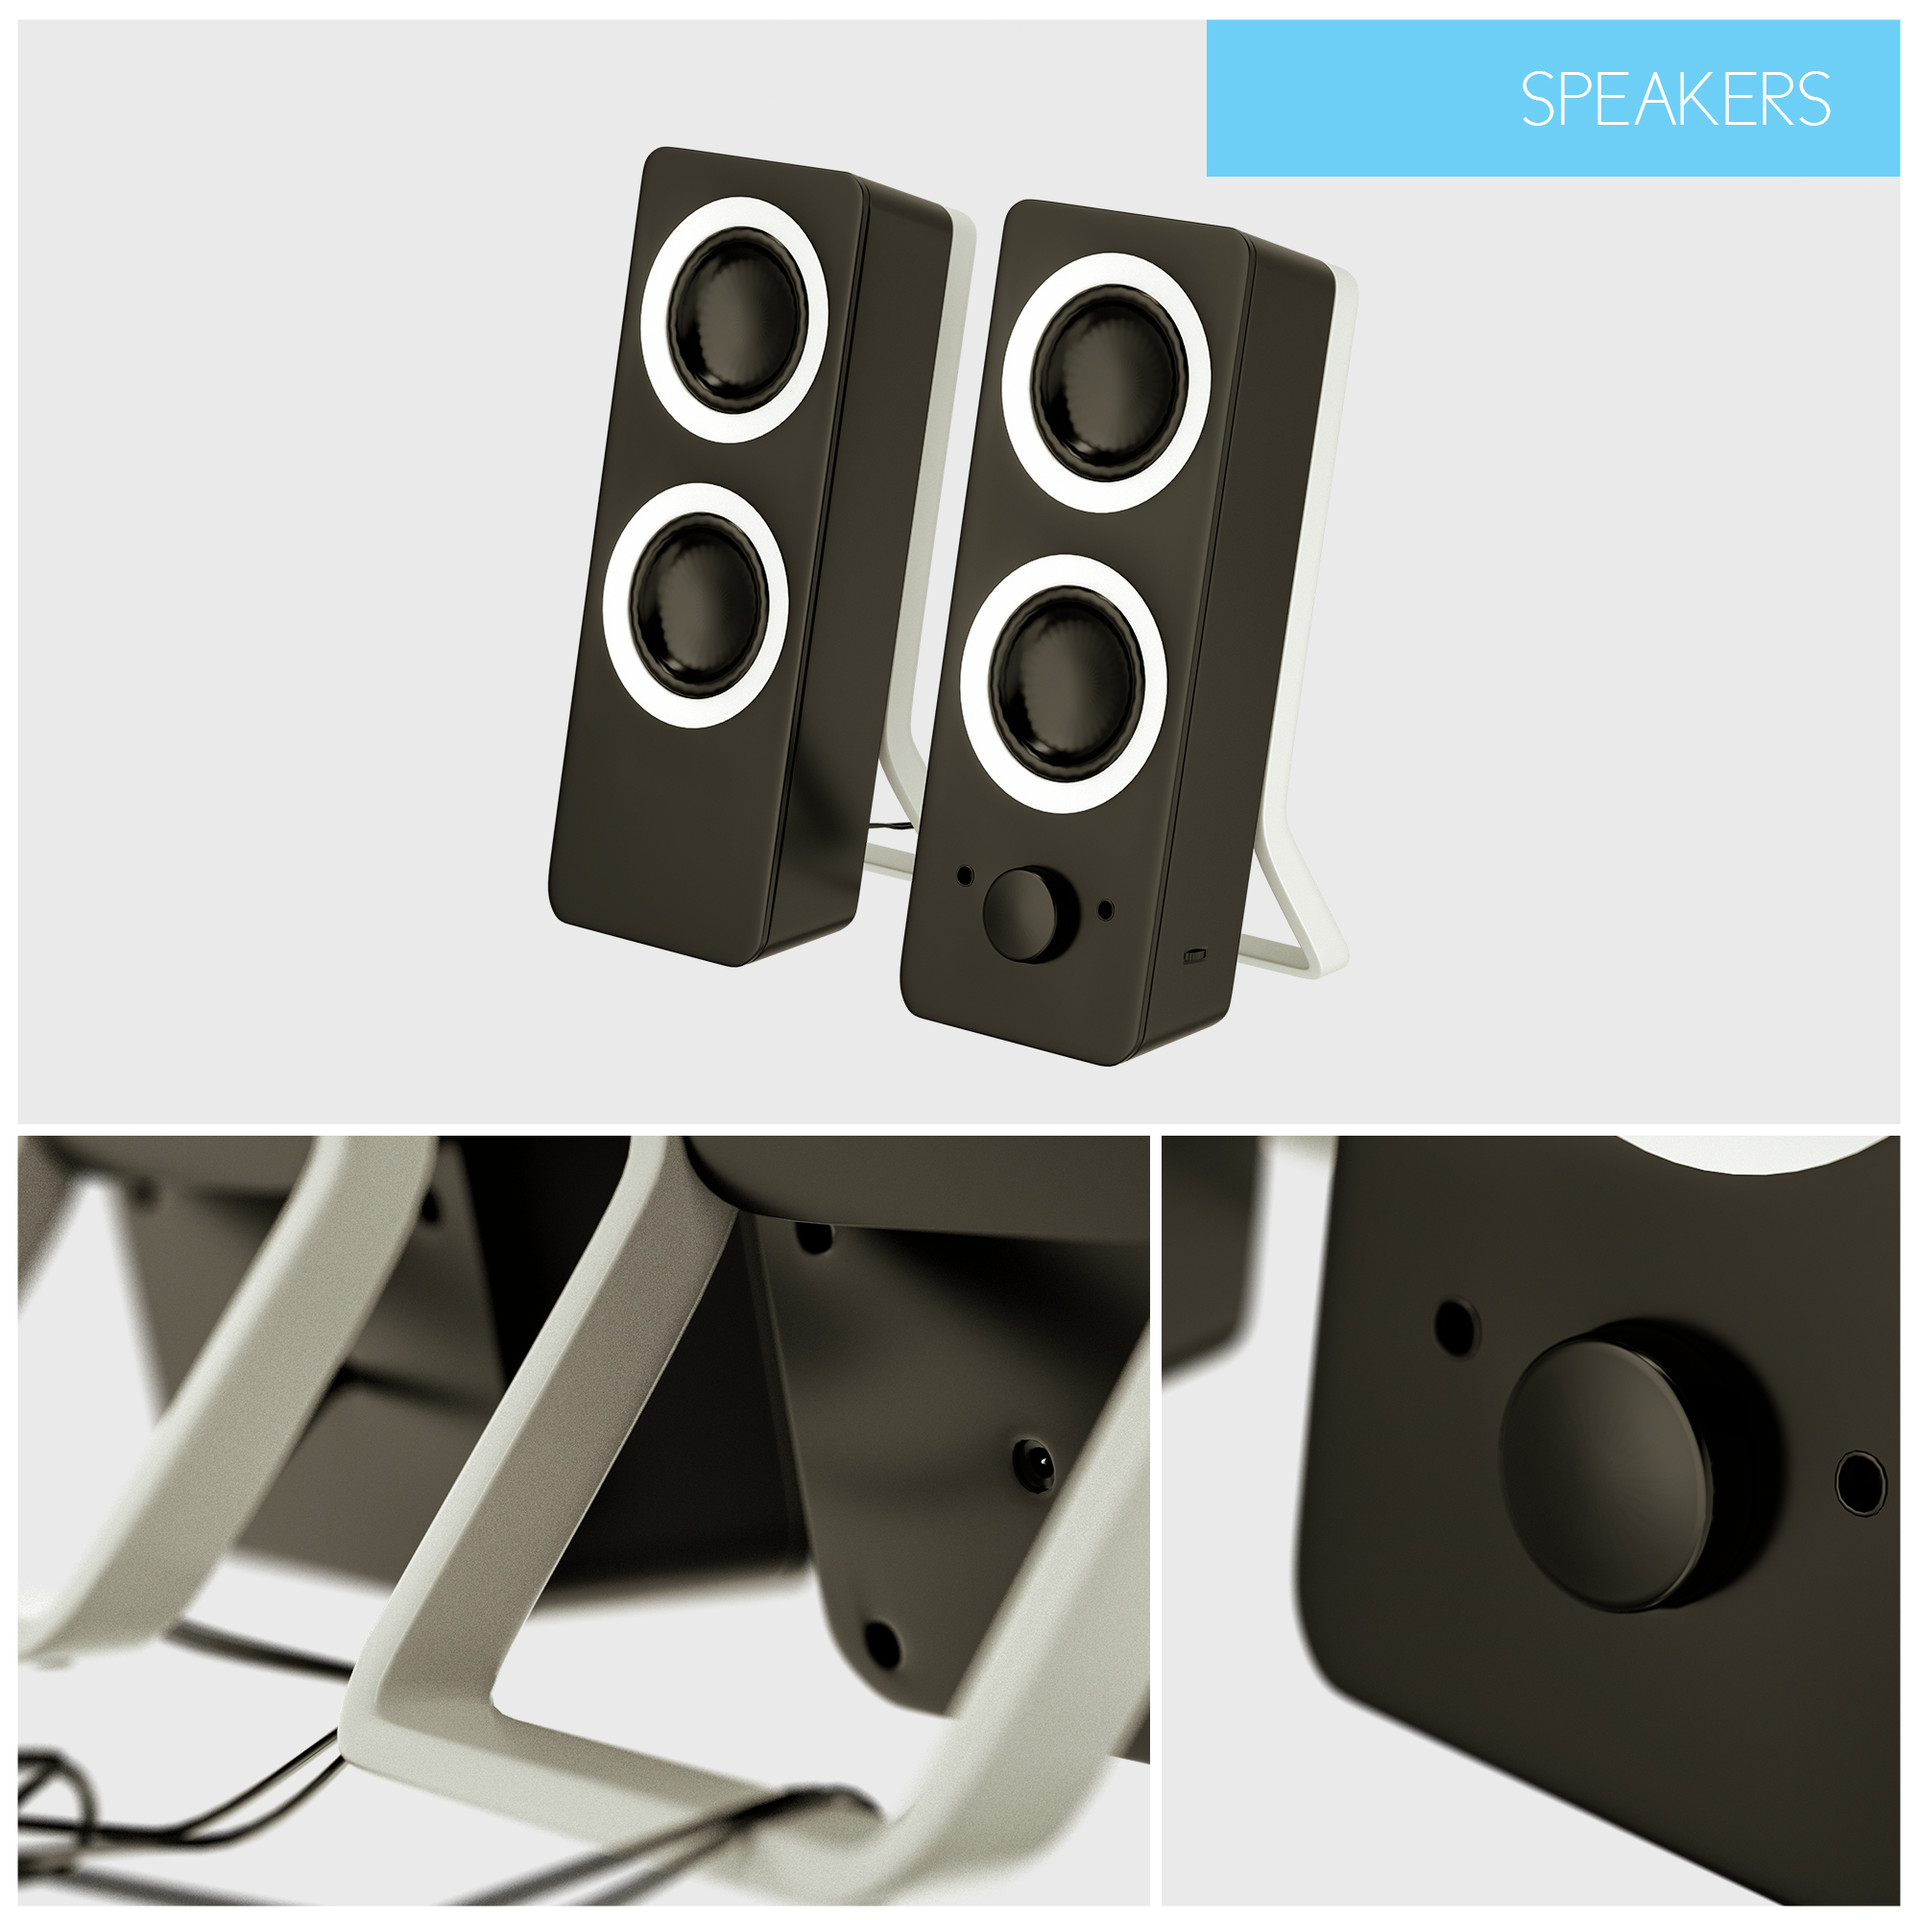 Marco baccioli electronic vol1 speakers